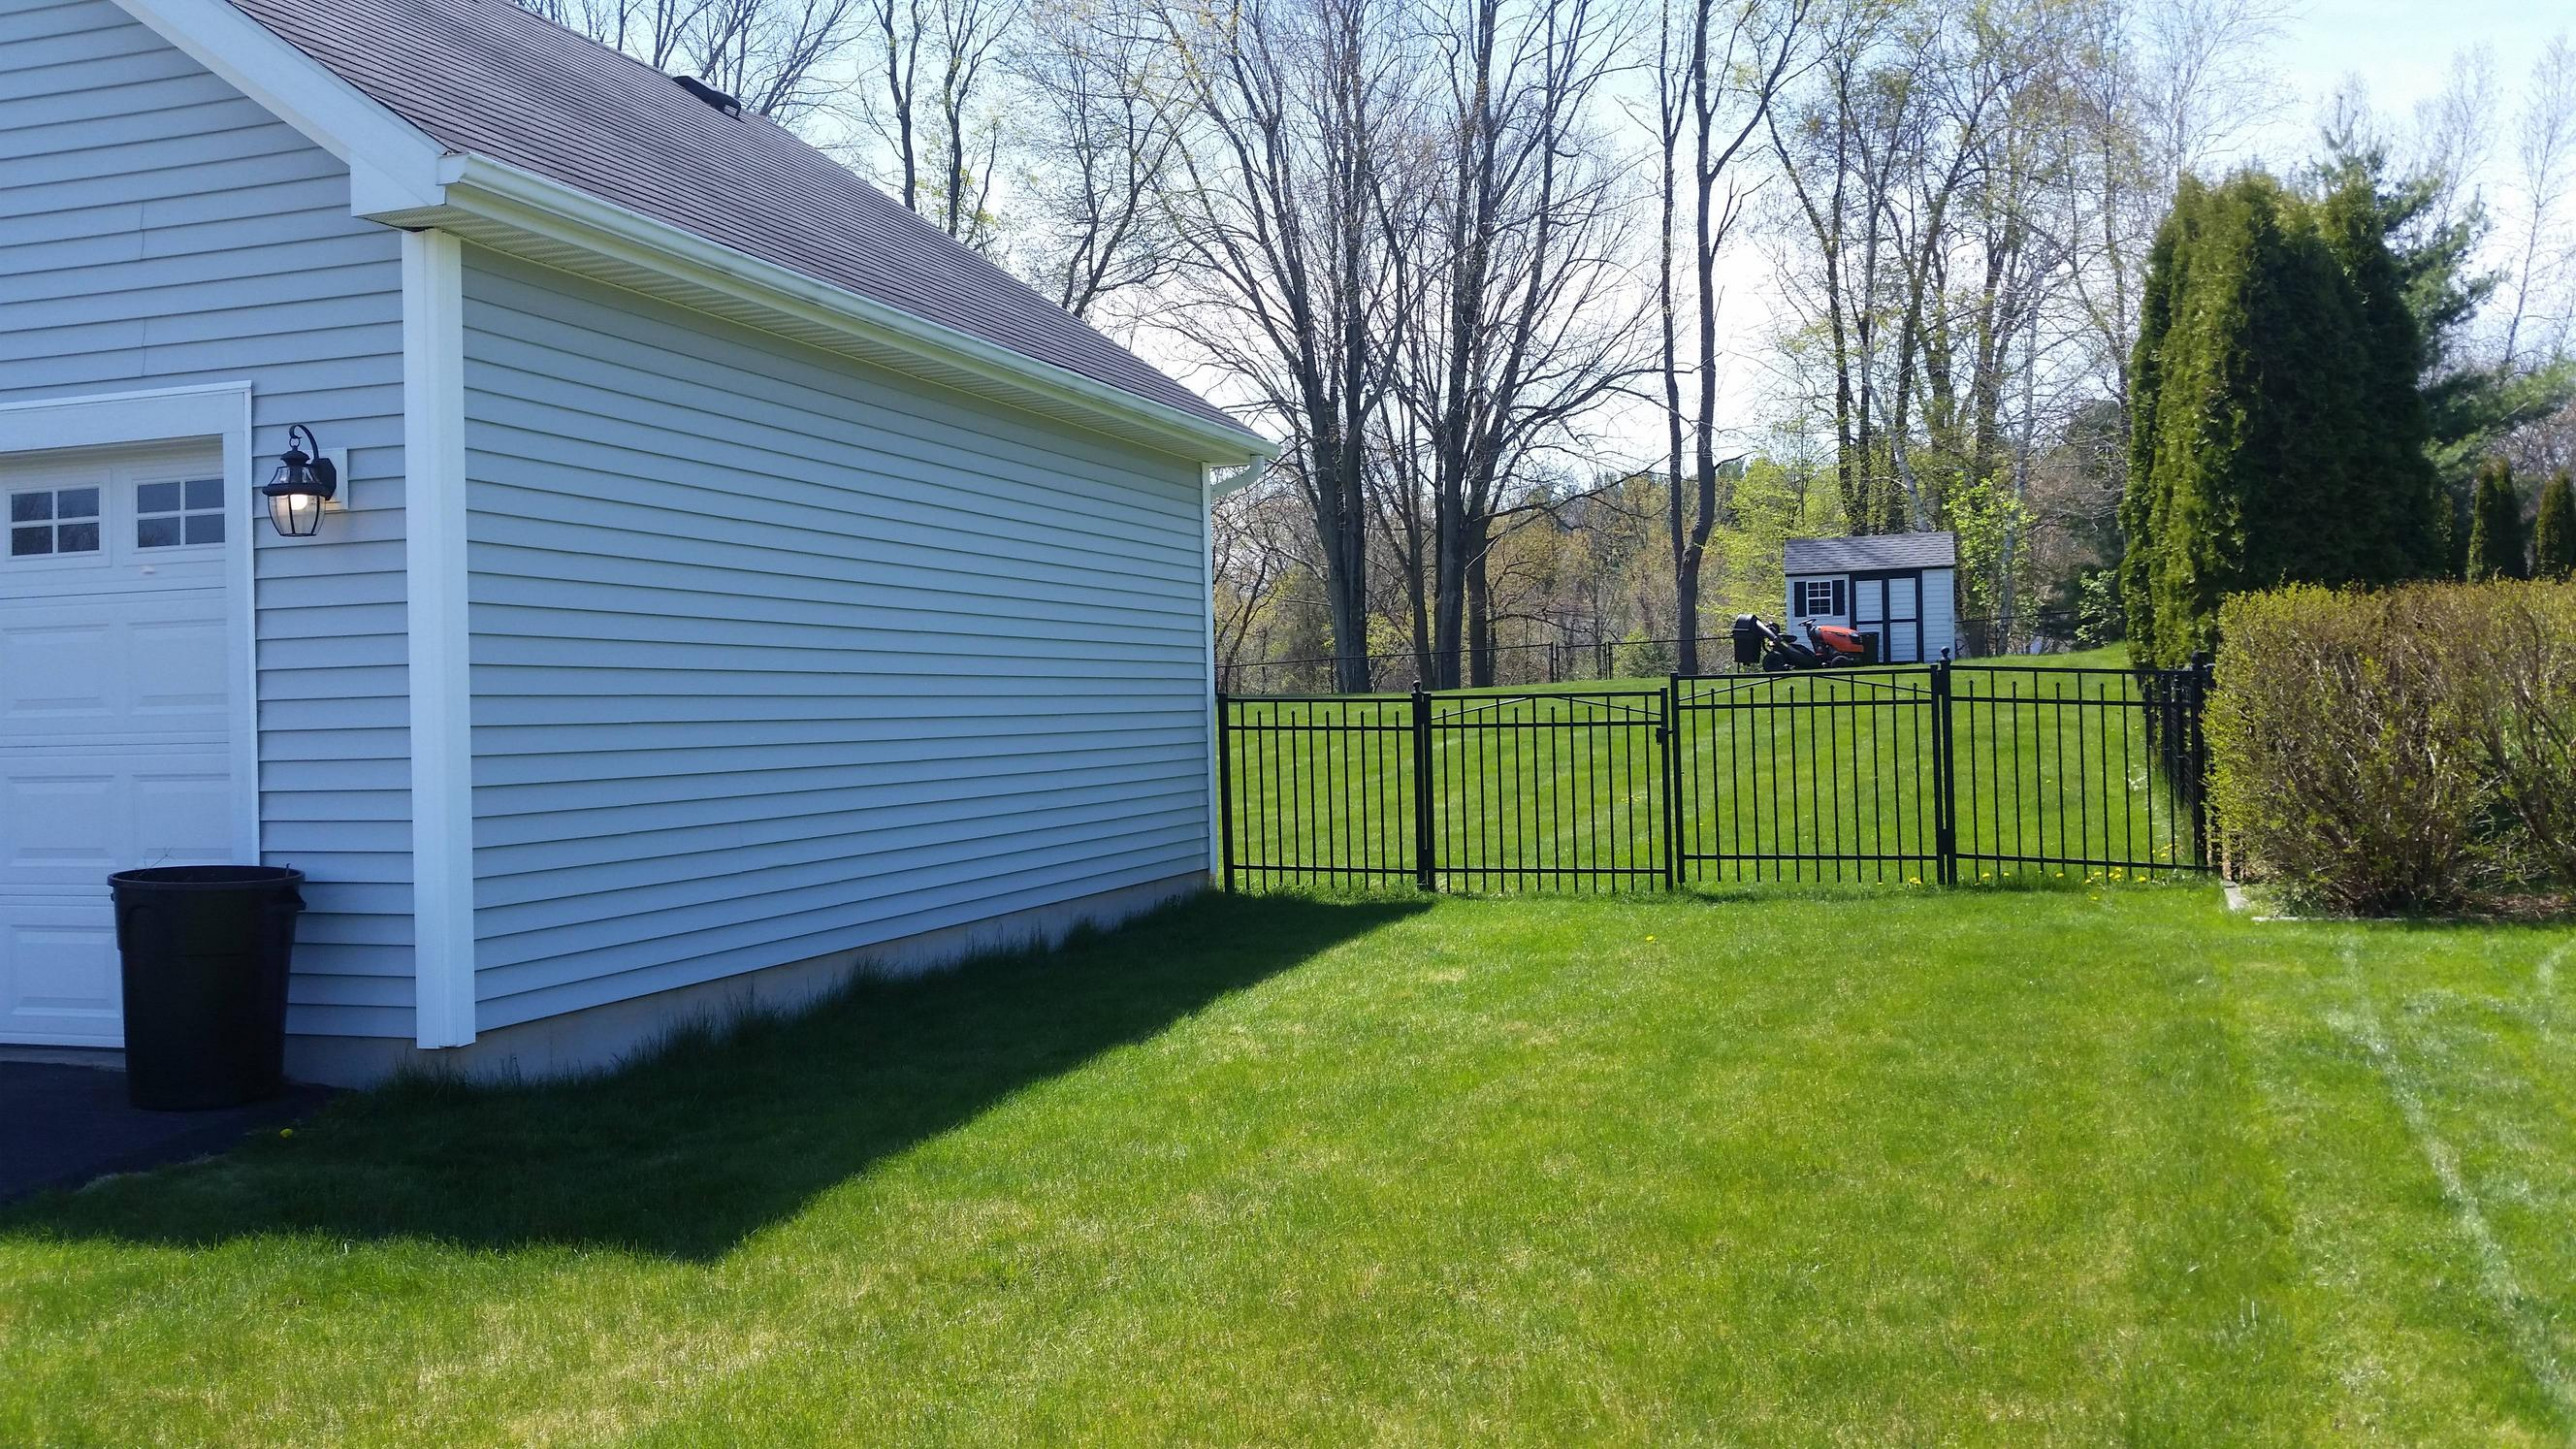 Can I build a car-port on the side of my garage? - Home ...